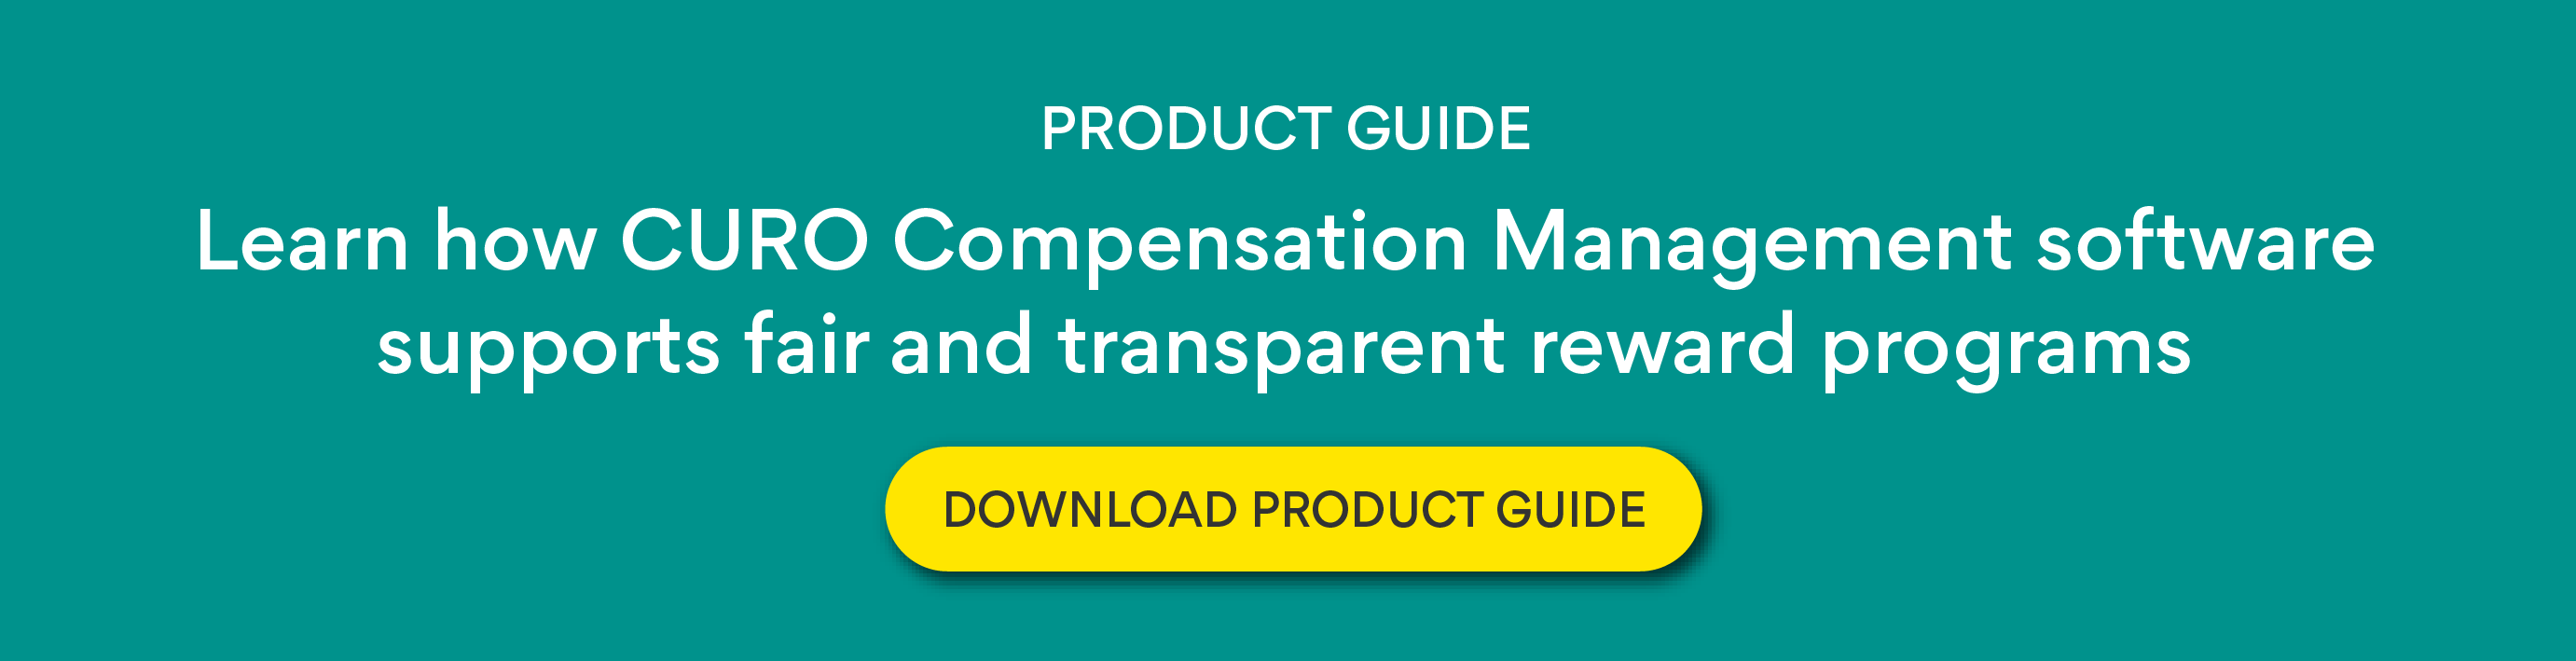 CURO Compensation Management product guide